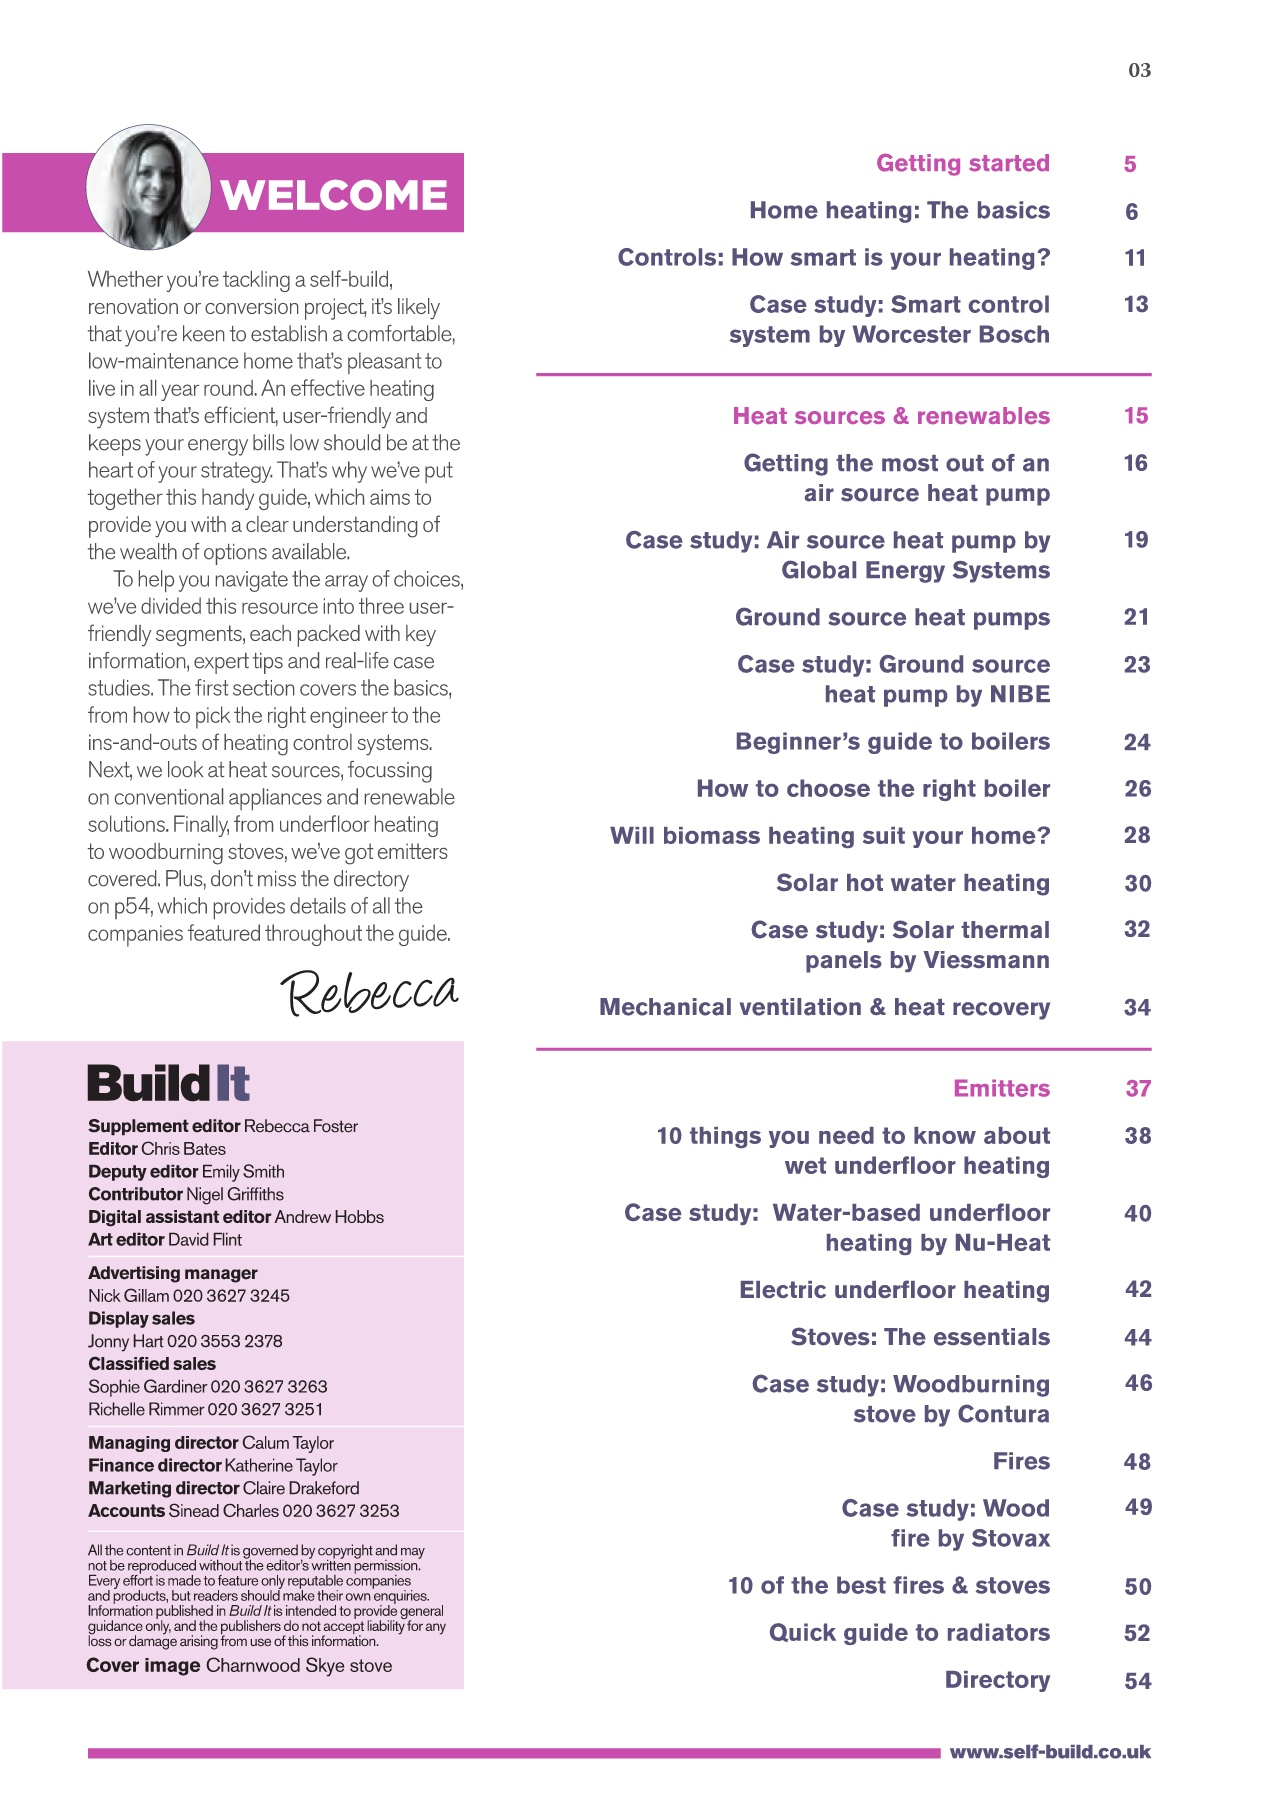 medium resolution of bi heating supplement 2017lores combined pages 1 50 text version anyflip